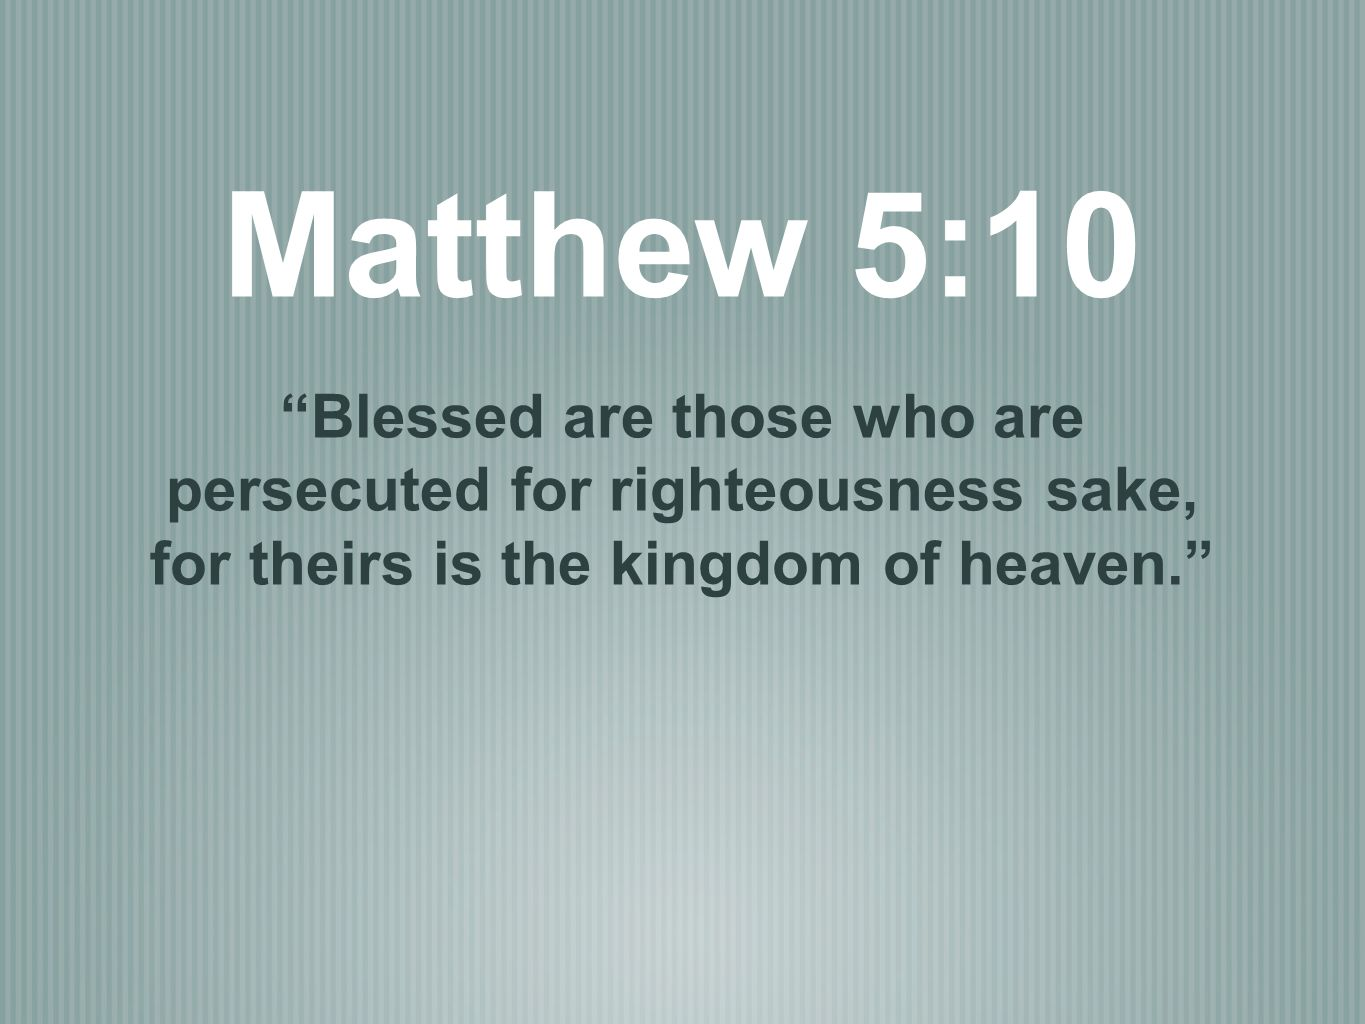 Matthew 5:10 Blessed are those who are persecuted for righteousness sake, for theirs is the kingdom of heaven.